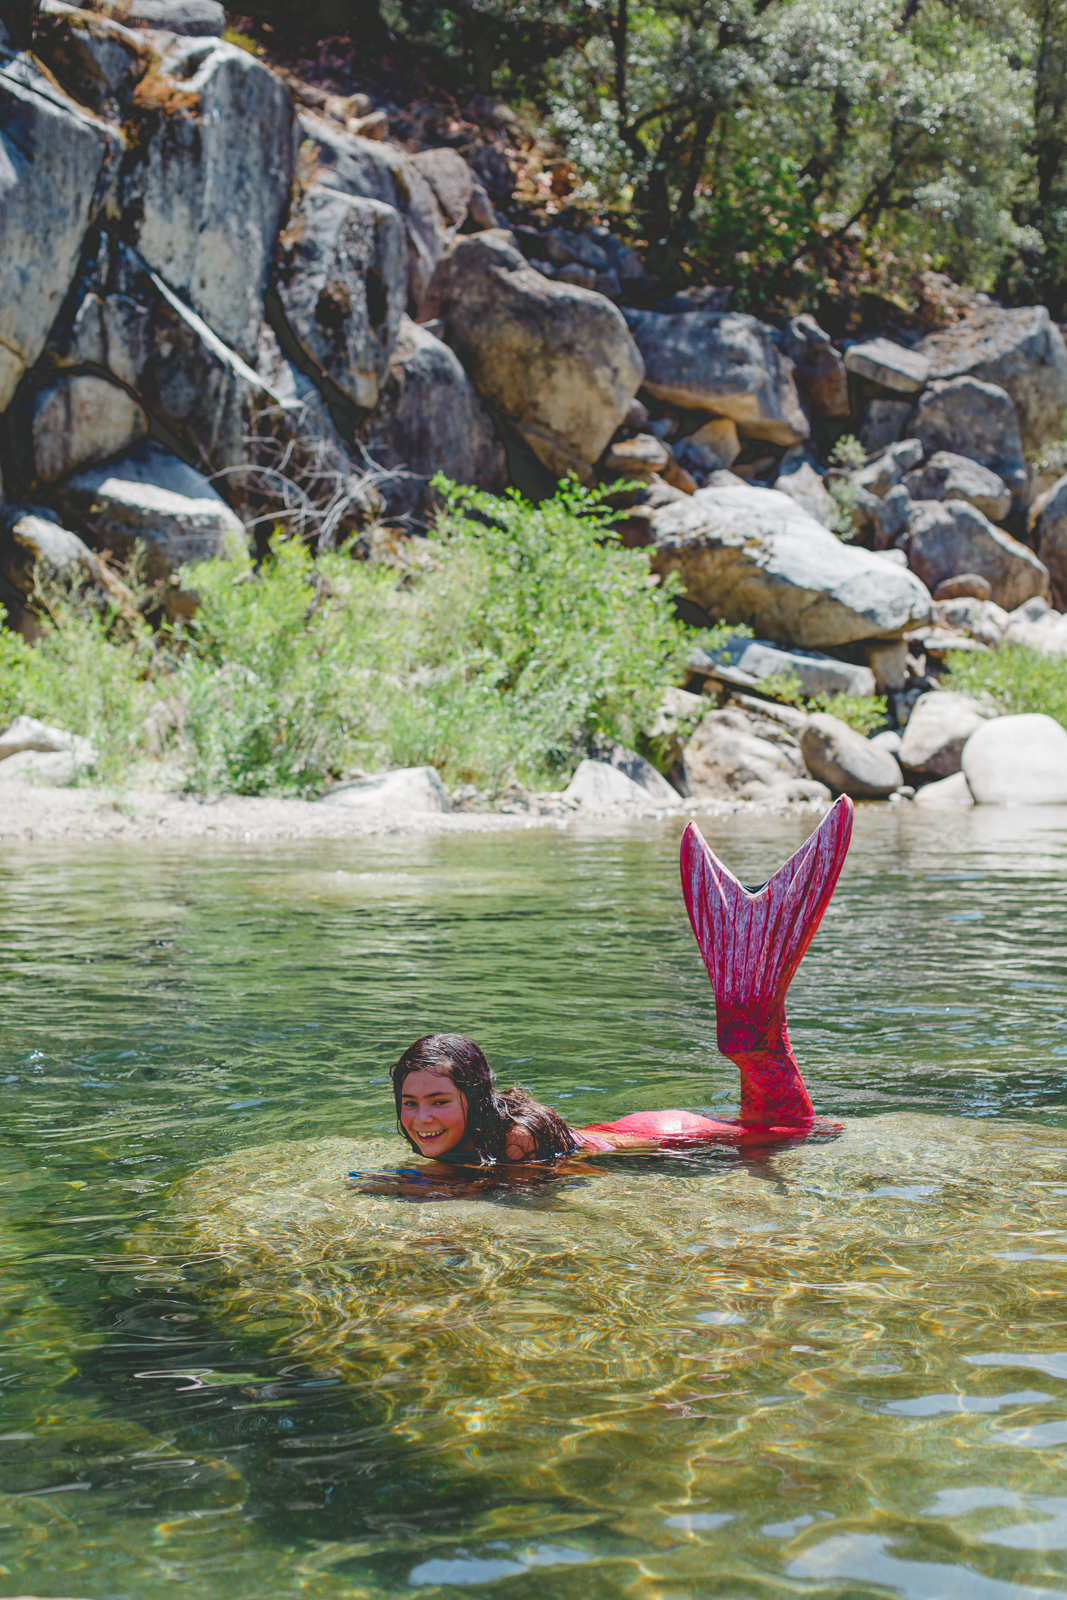 Mermaid in the Yuba River, Nevada City, showing off her Fin Fun Mermaid Tail